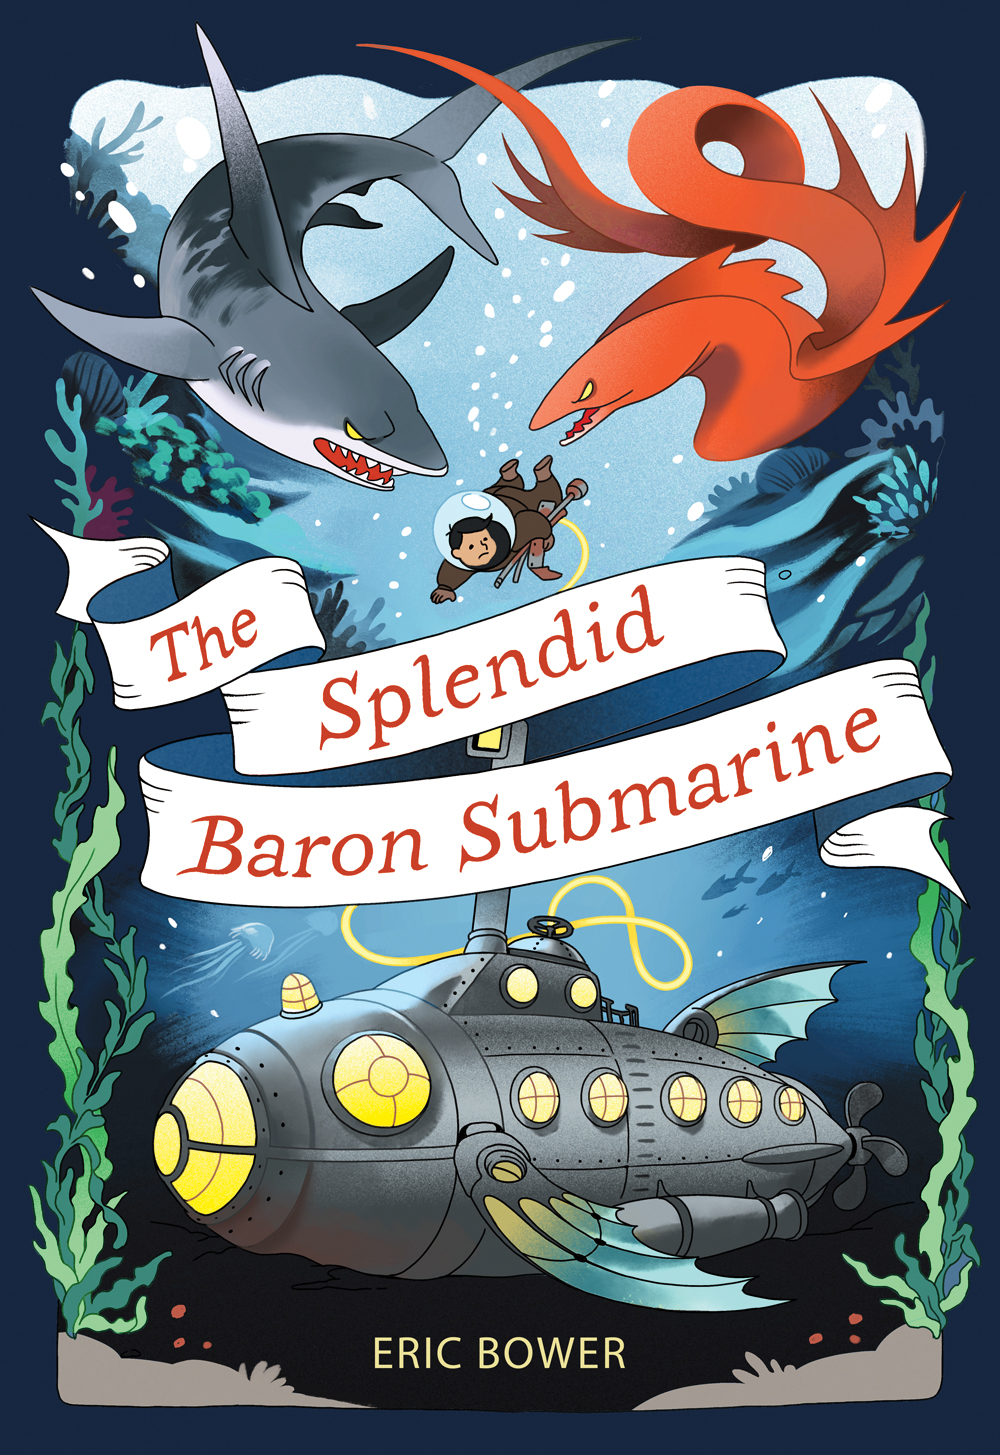 The Splendid Baron Submarine